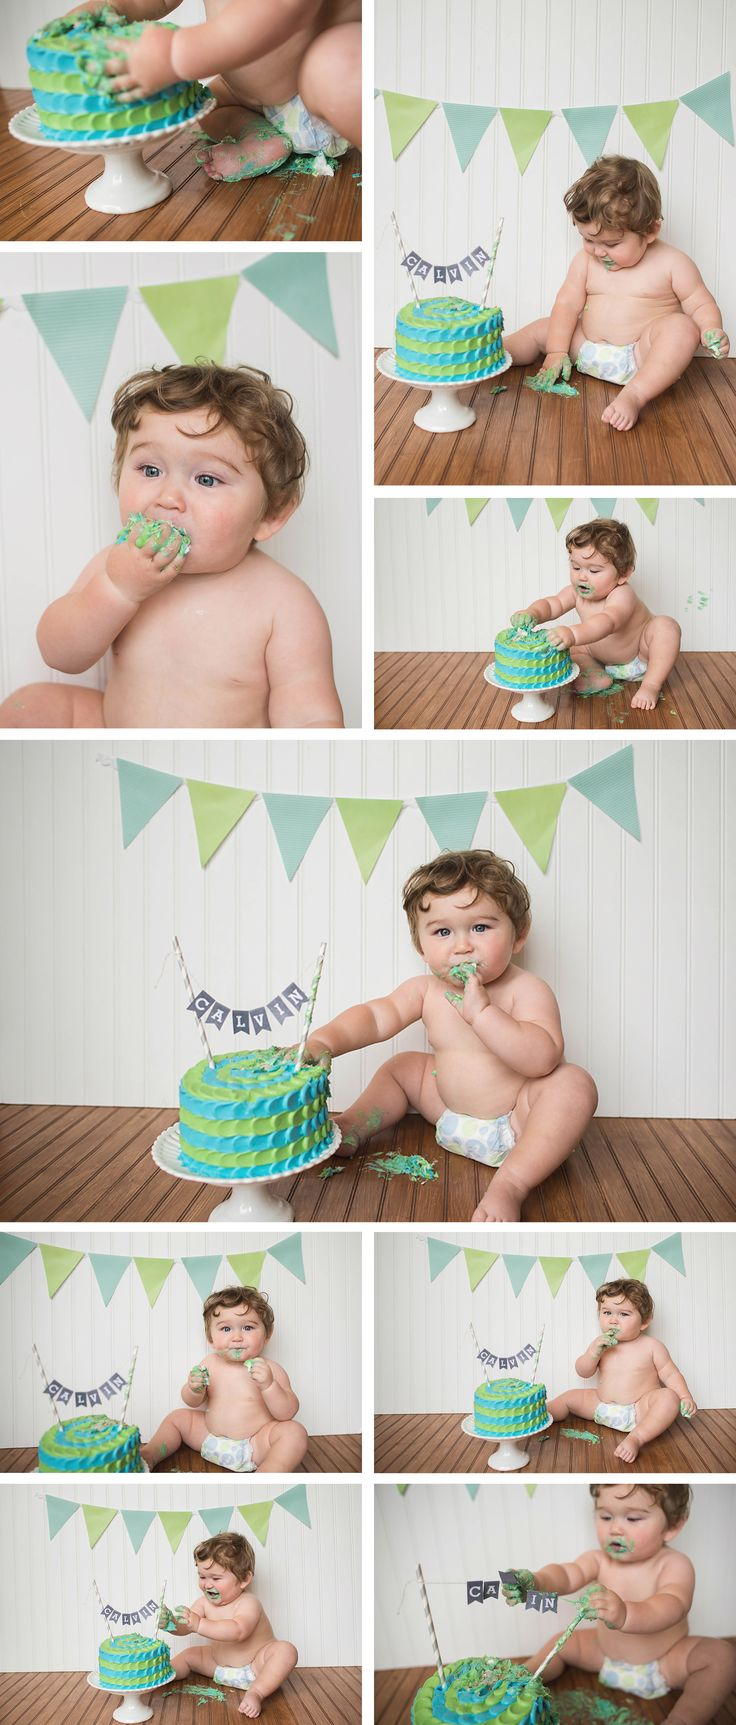 first birthday boy cake smash ideas | brittany chandler photography Vancouver, wa family photographer